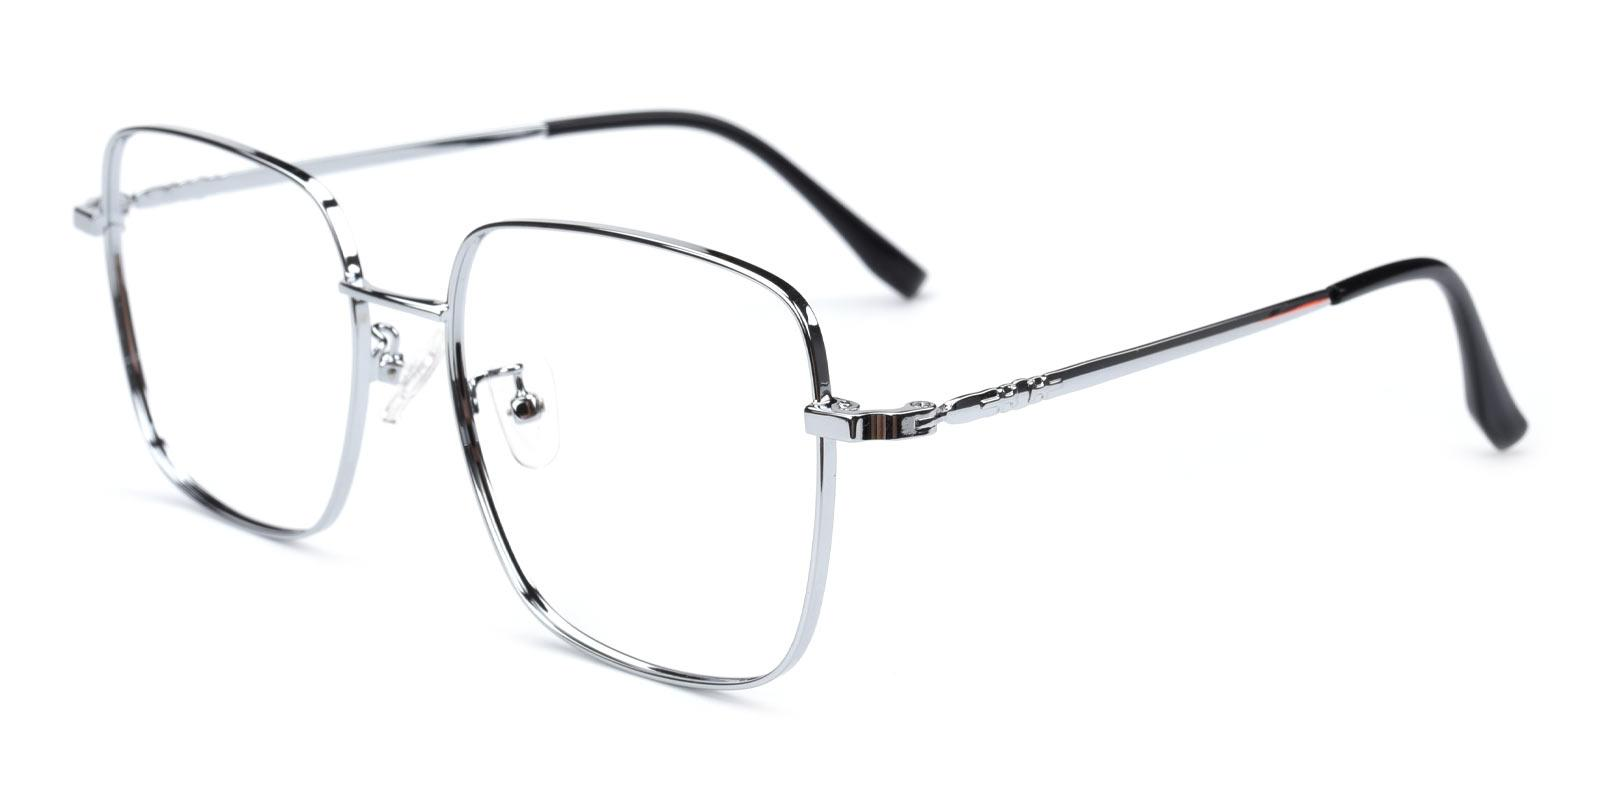 Kelly-Silver-Square-Metal-Eyeglasses-additional1